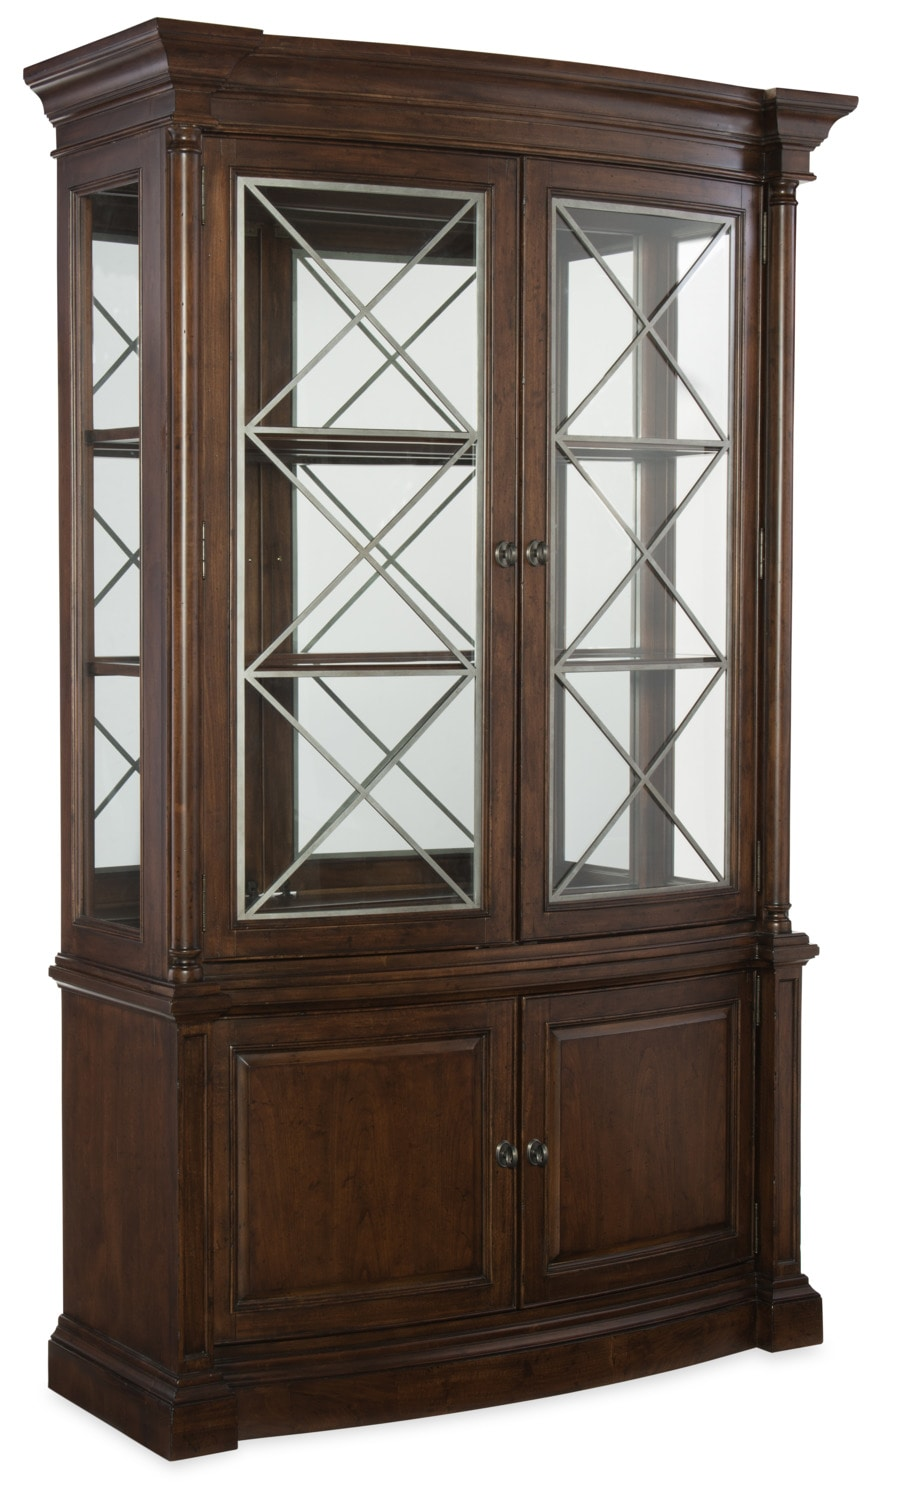 Rachael Ray Upstate Display Cabinet  - Cherry